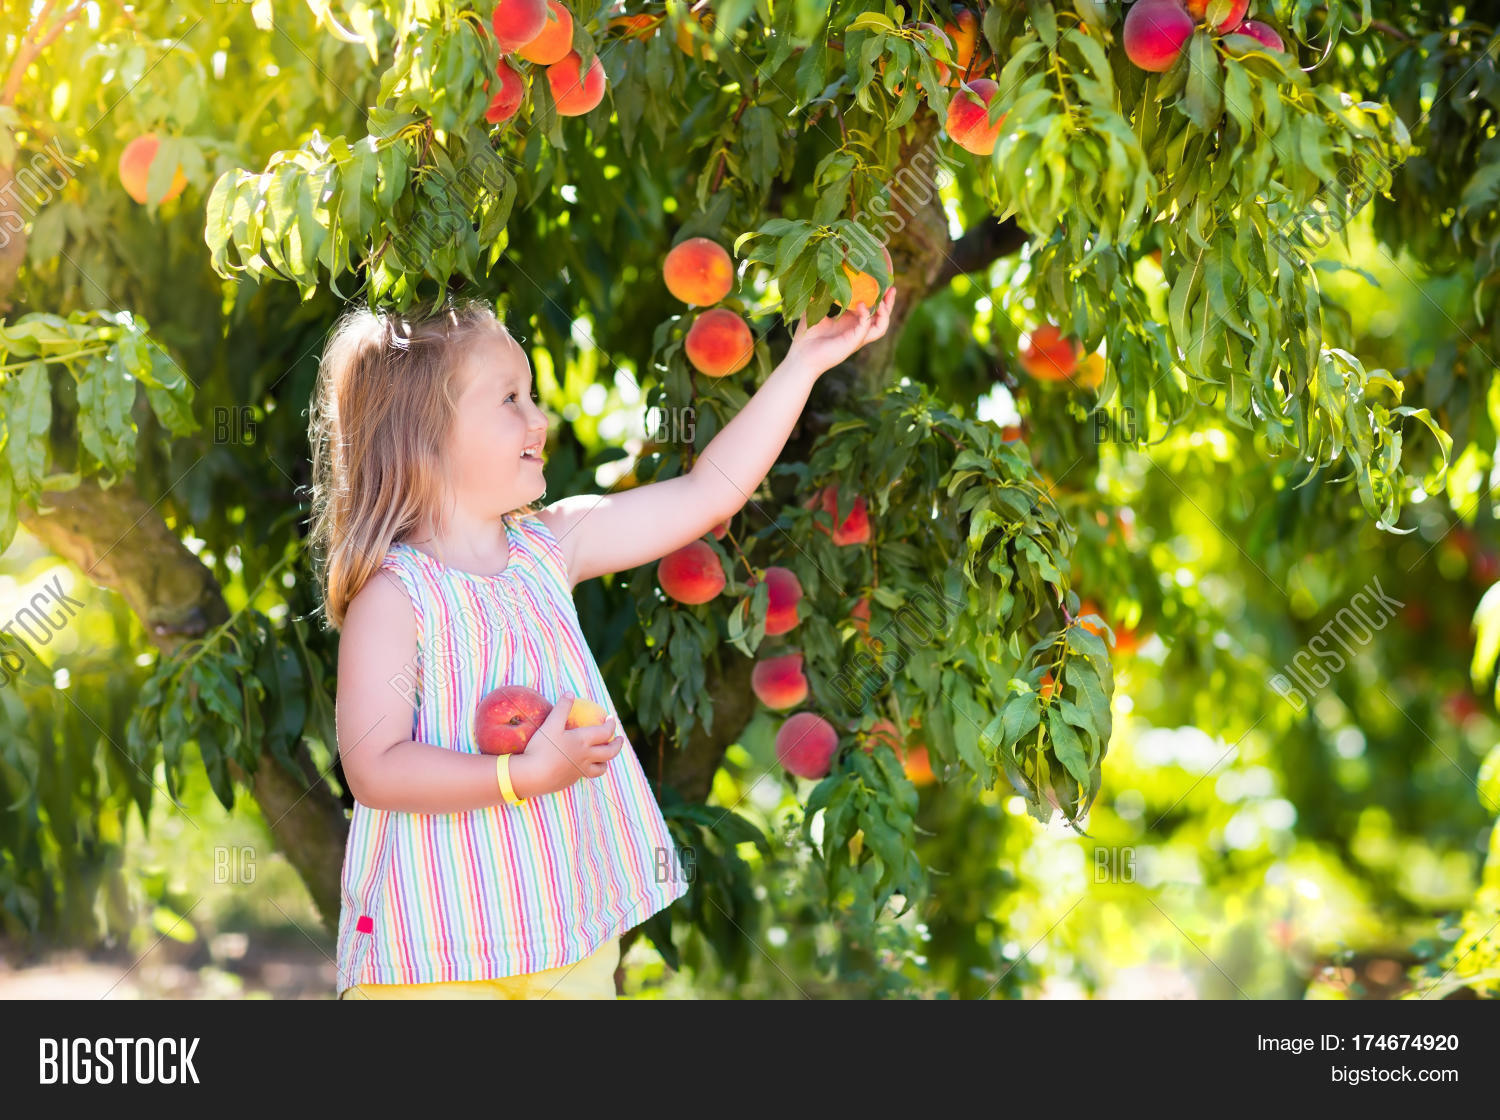 lower peach tree single girls 1,553 best peach blossom images free stock photos download for commercial use in hd high resolution jpg images format peach blossom images, free stock photos, peach blossom images, peach blossom, peach blossom flower, peach blossoms flower images, peach blossom pictures, peach blossoms, peach blossoms flower, peach blossom tree.